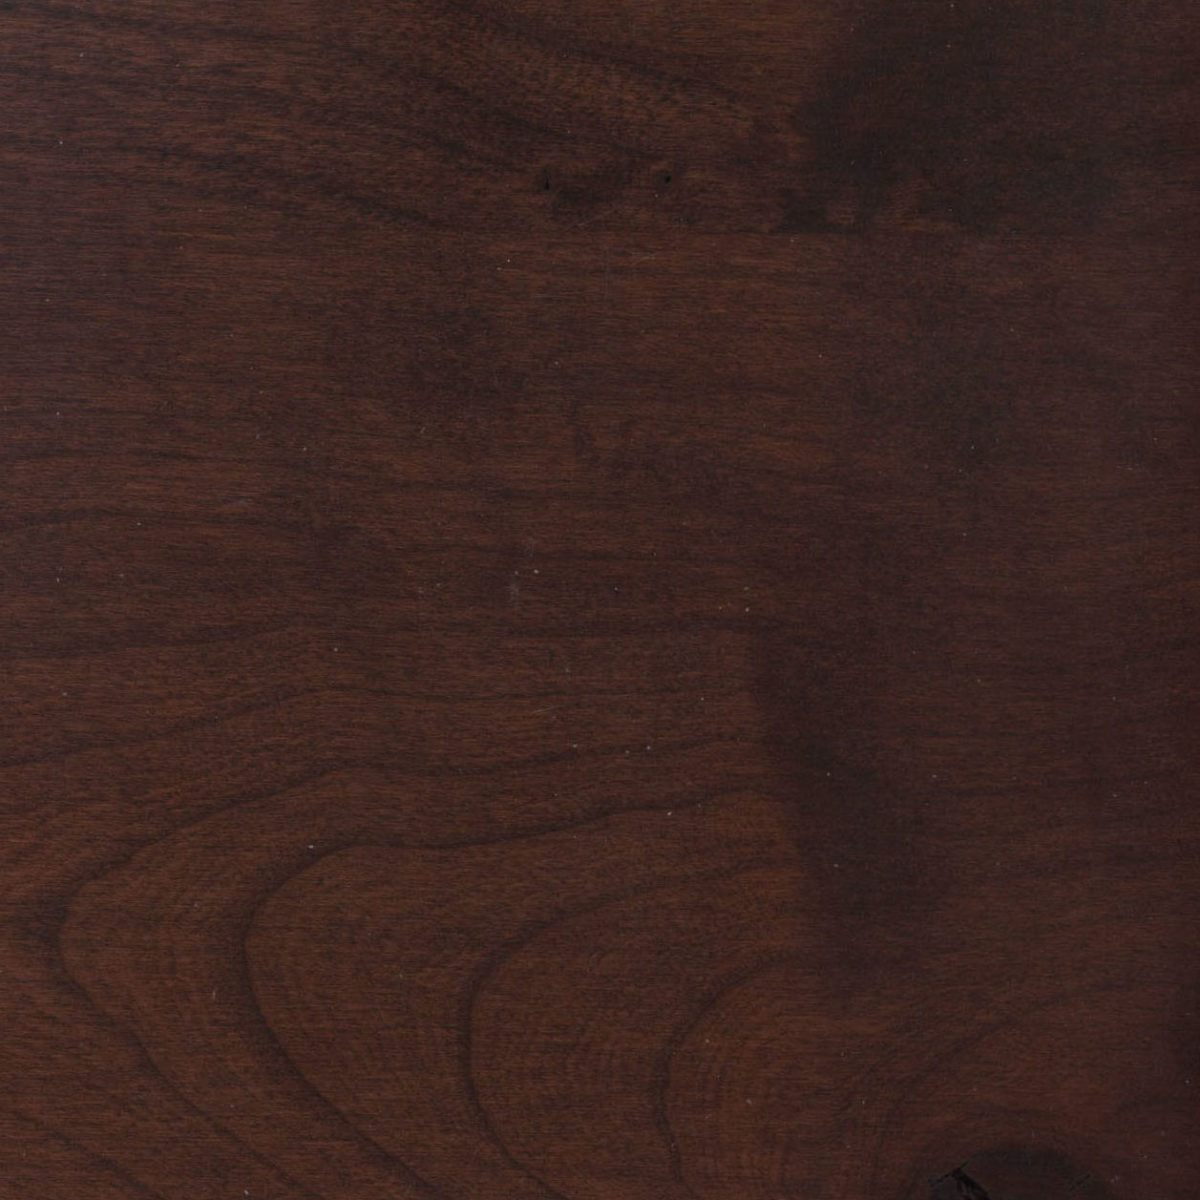 63A Rustic Cherry Wood Stain Sample